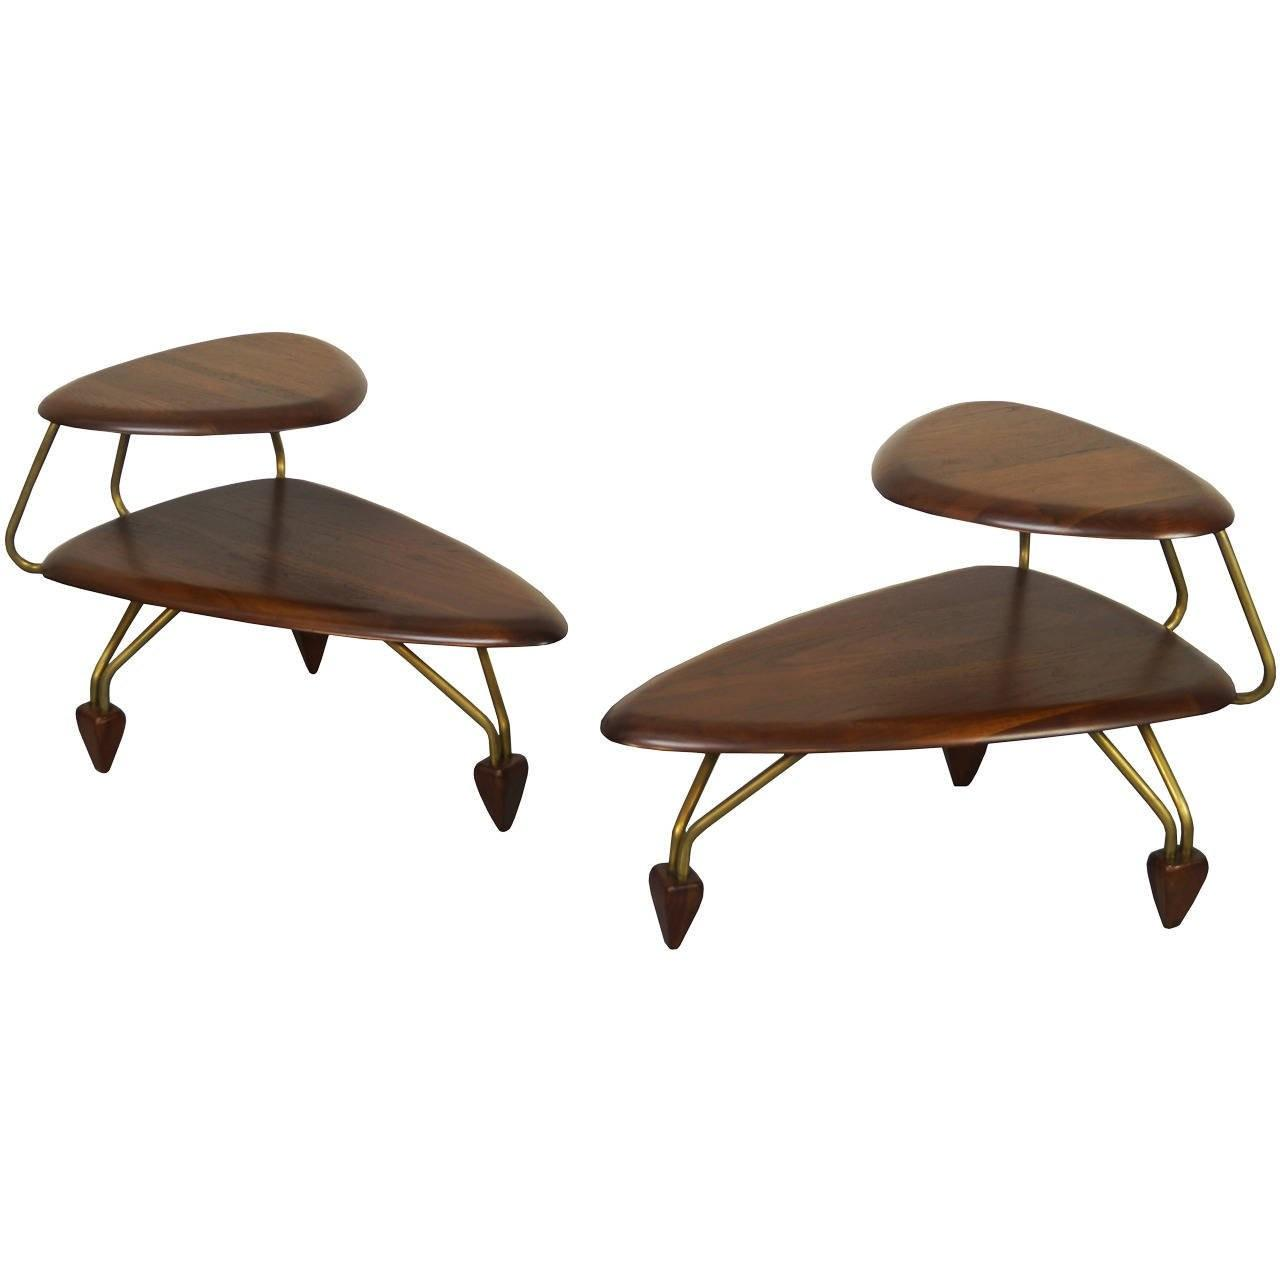 Vintage Surfboard Side Tables John Keal 1stdibs